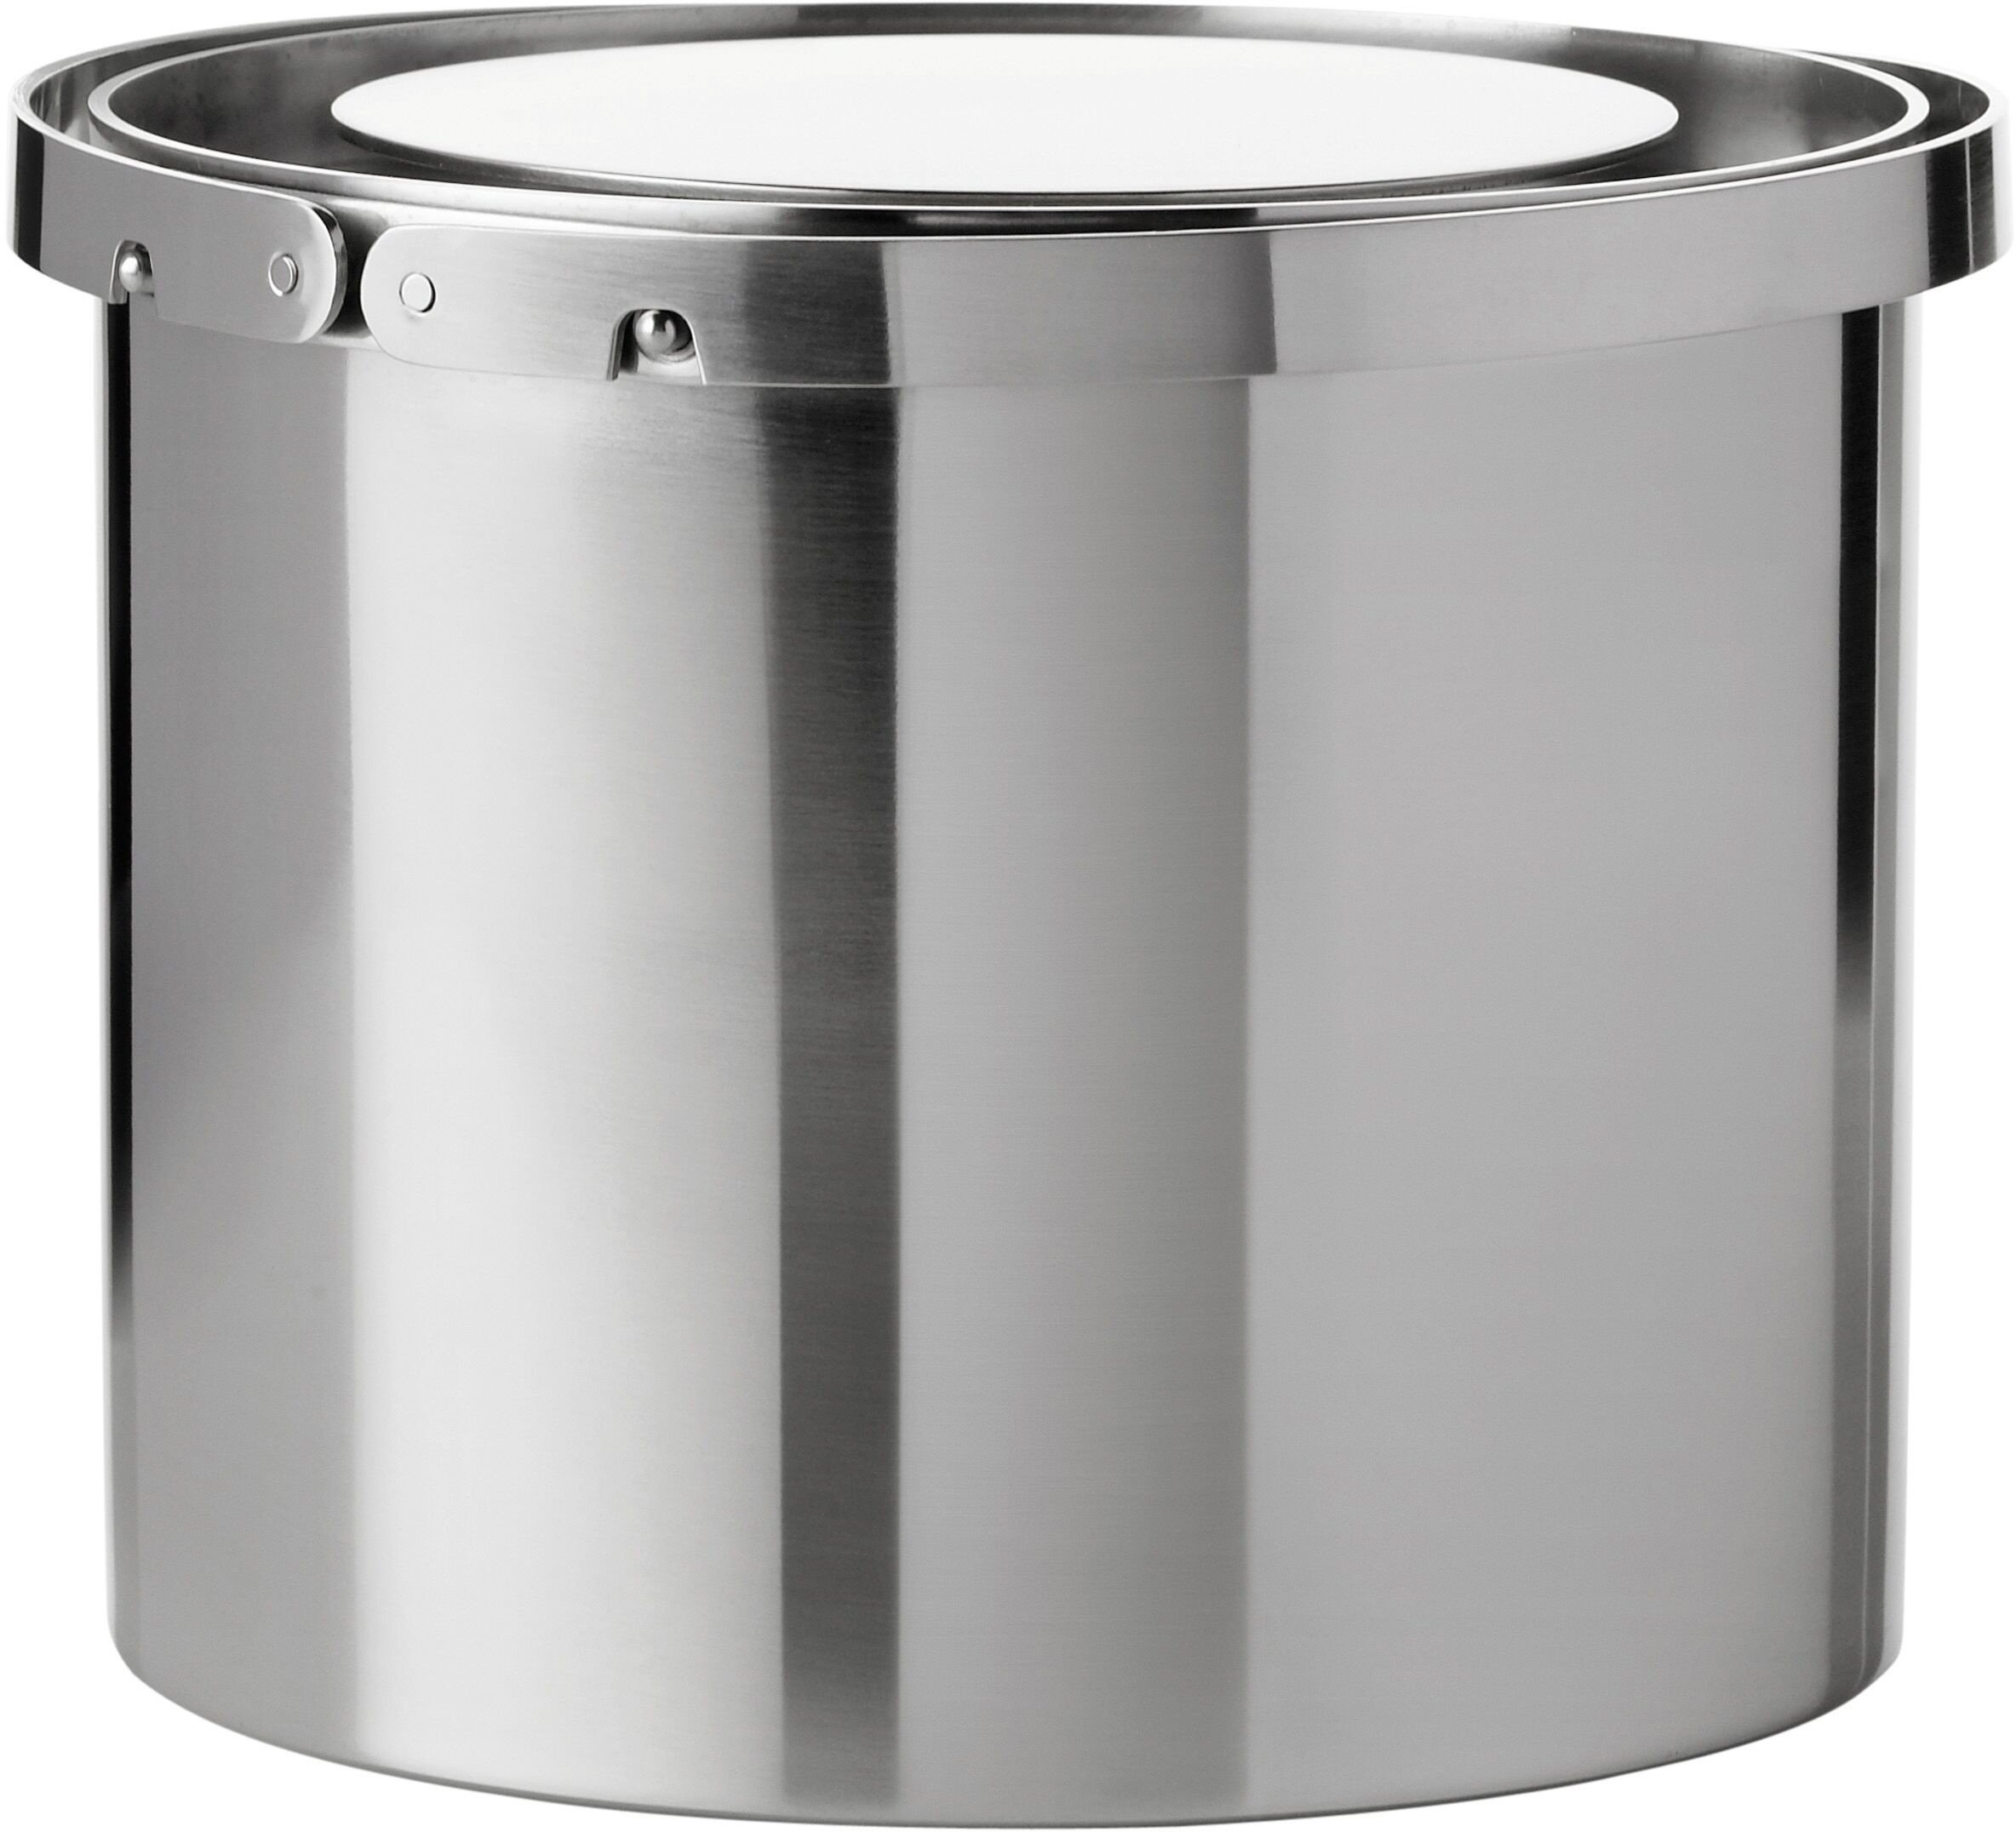 Cylinda-line Ice Bucket 1L by A. Jacobsen for Stelton